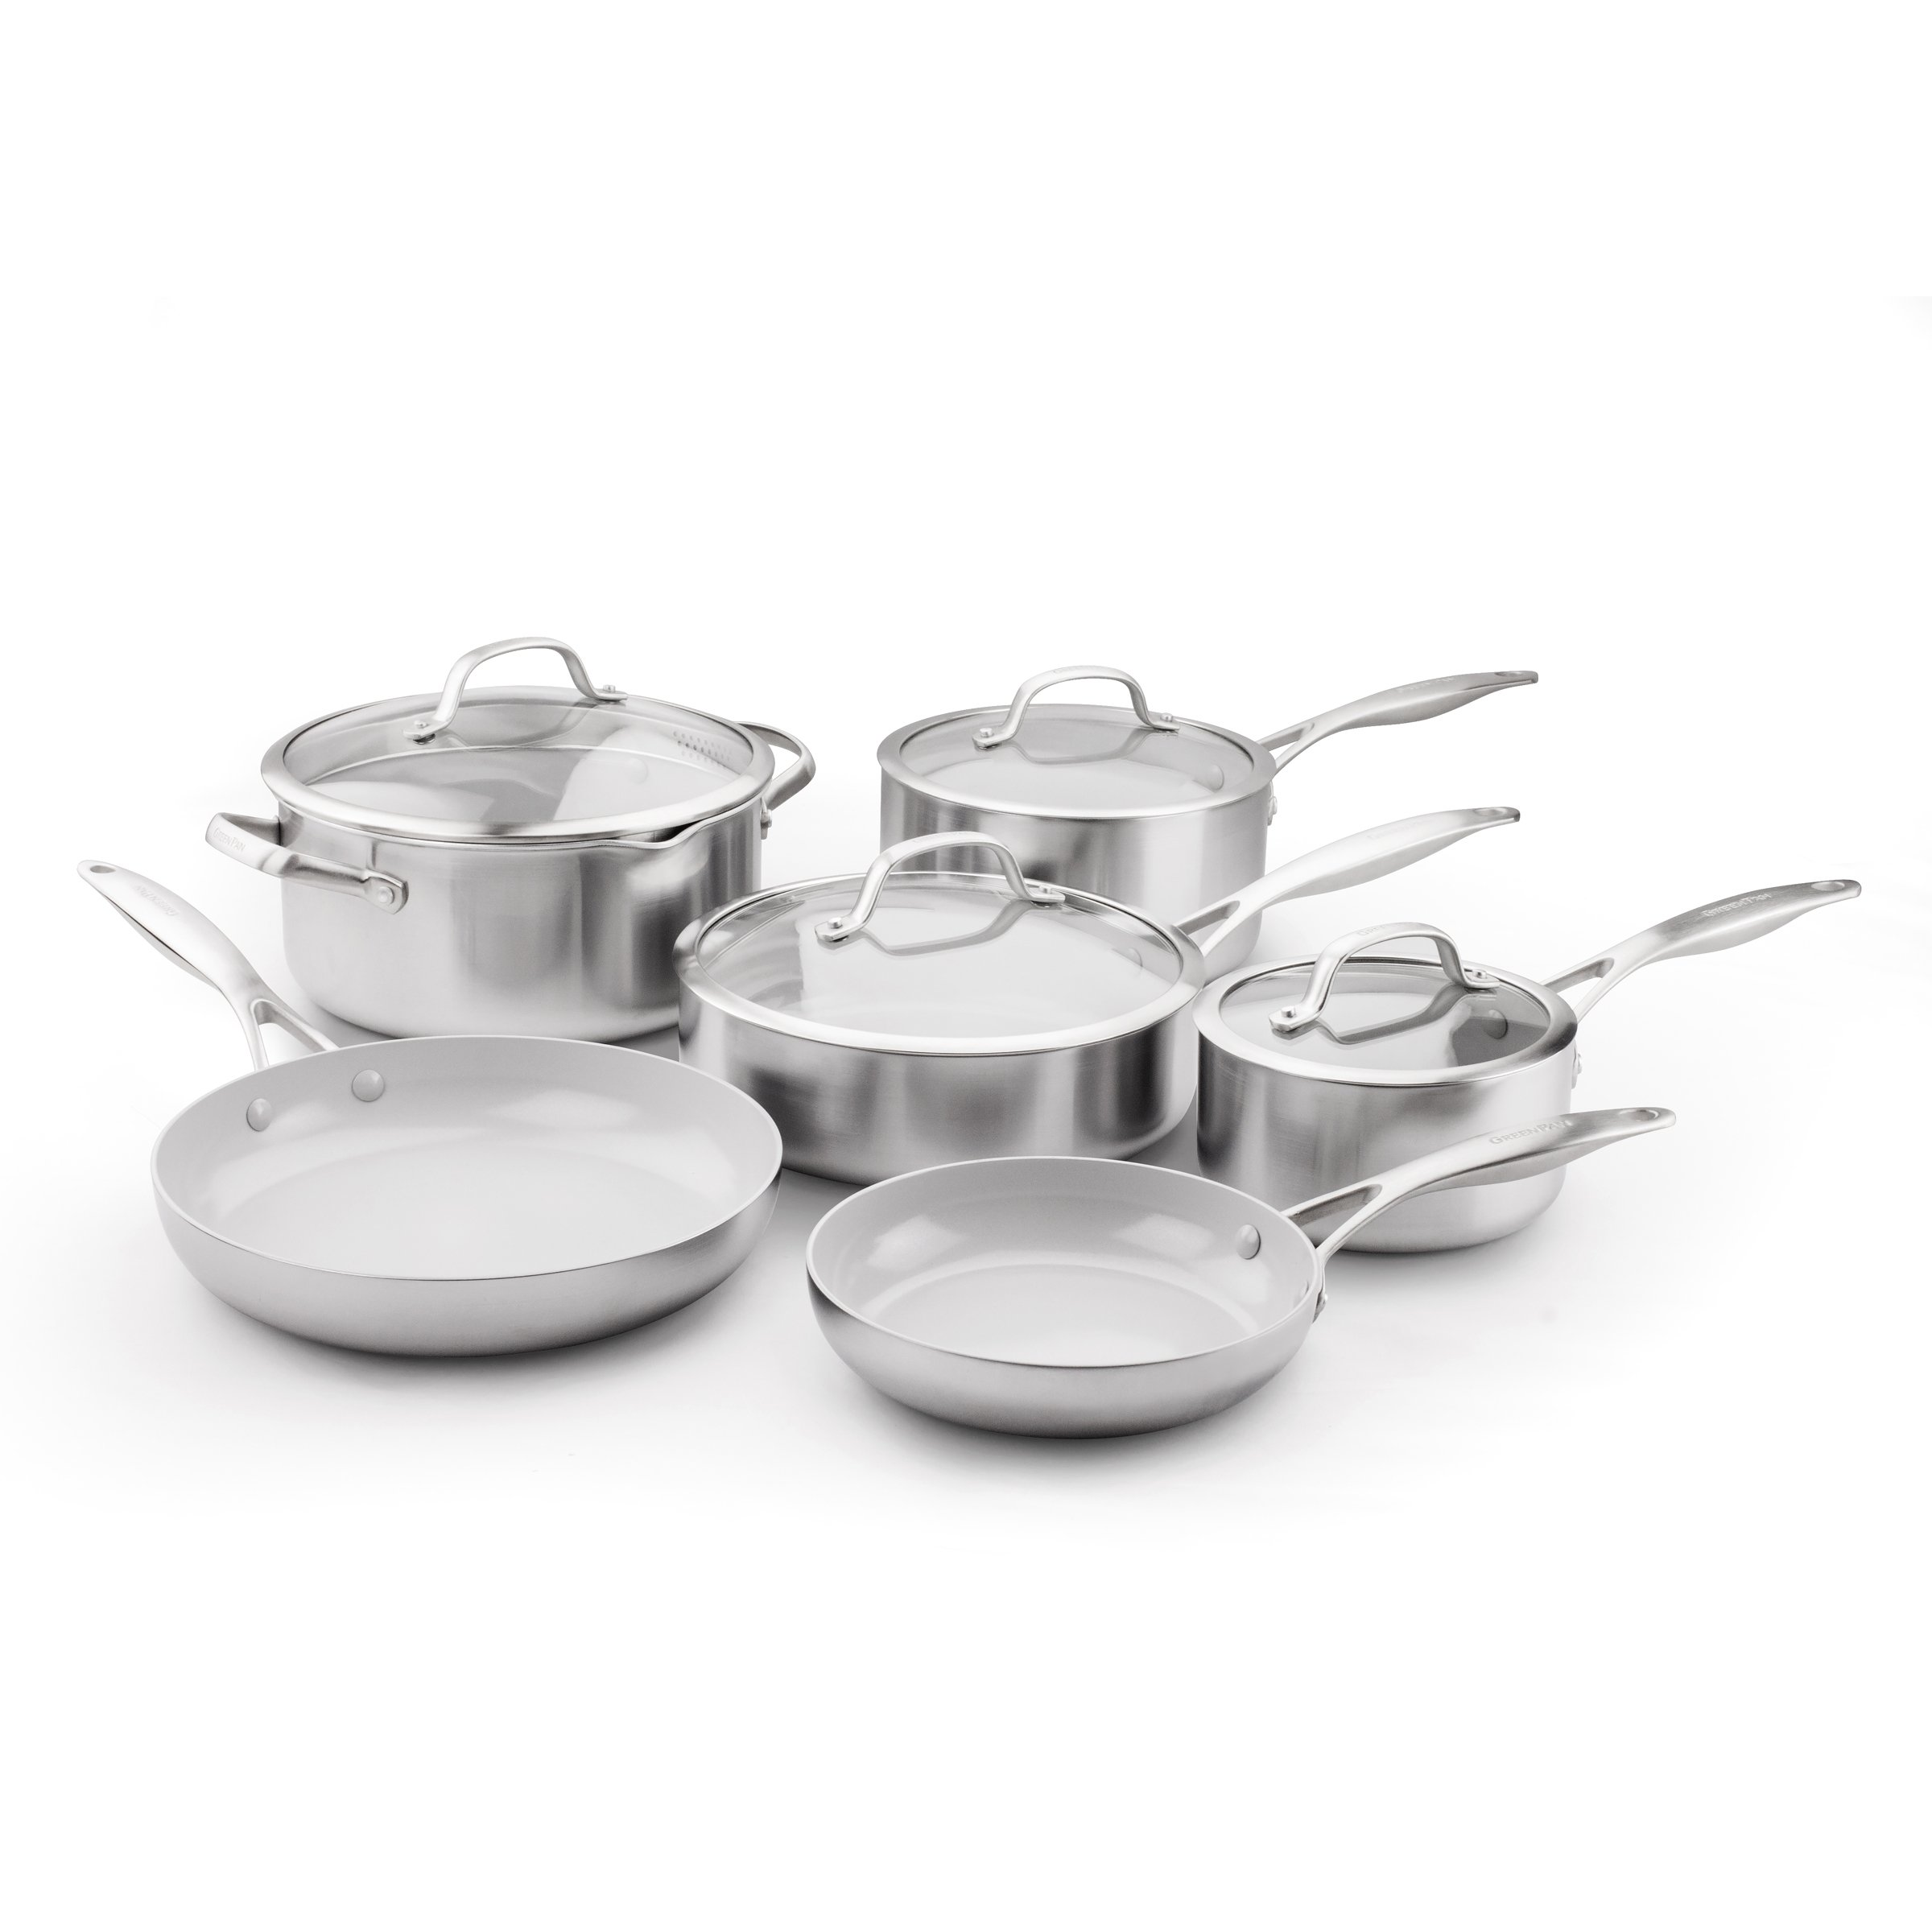 GreenPan Venice Pro Ceramic Non-Stick 10Pc Cookware Set by GreenPan (Image #1)